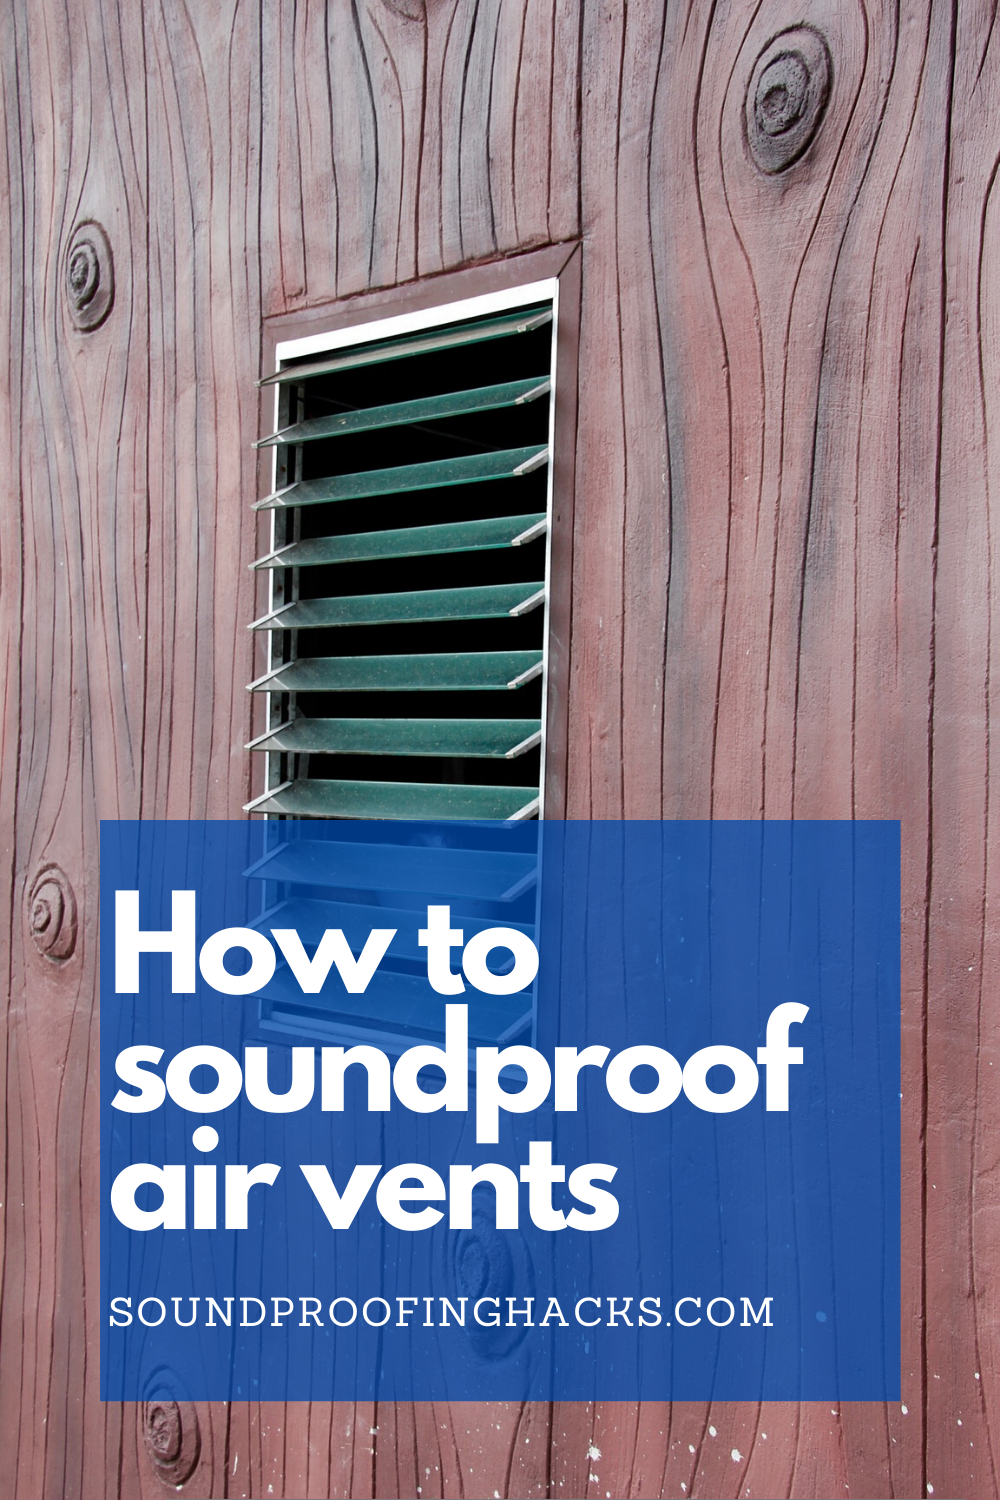 How to soundproof air vents? in 2020 | Sound proofing ...